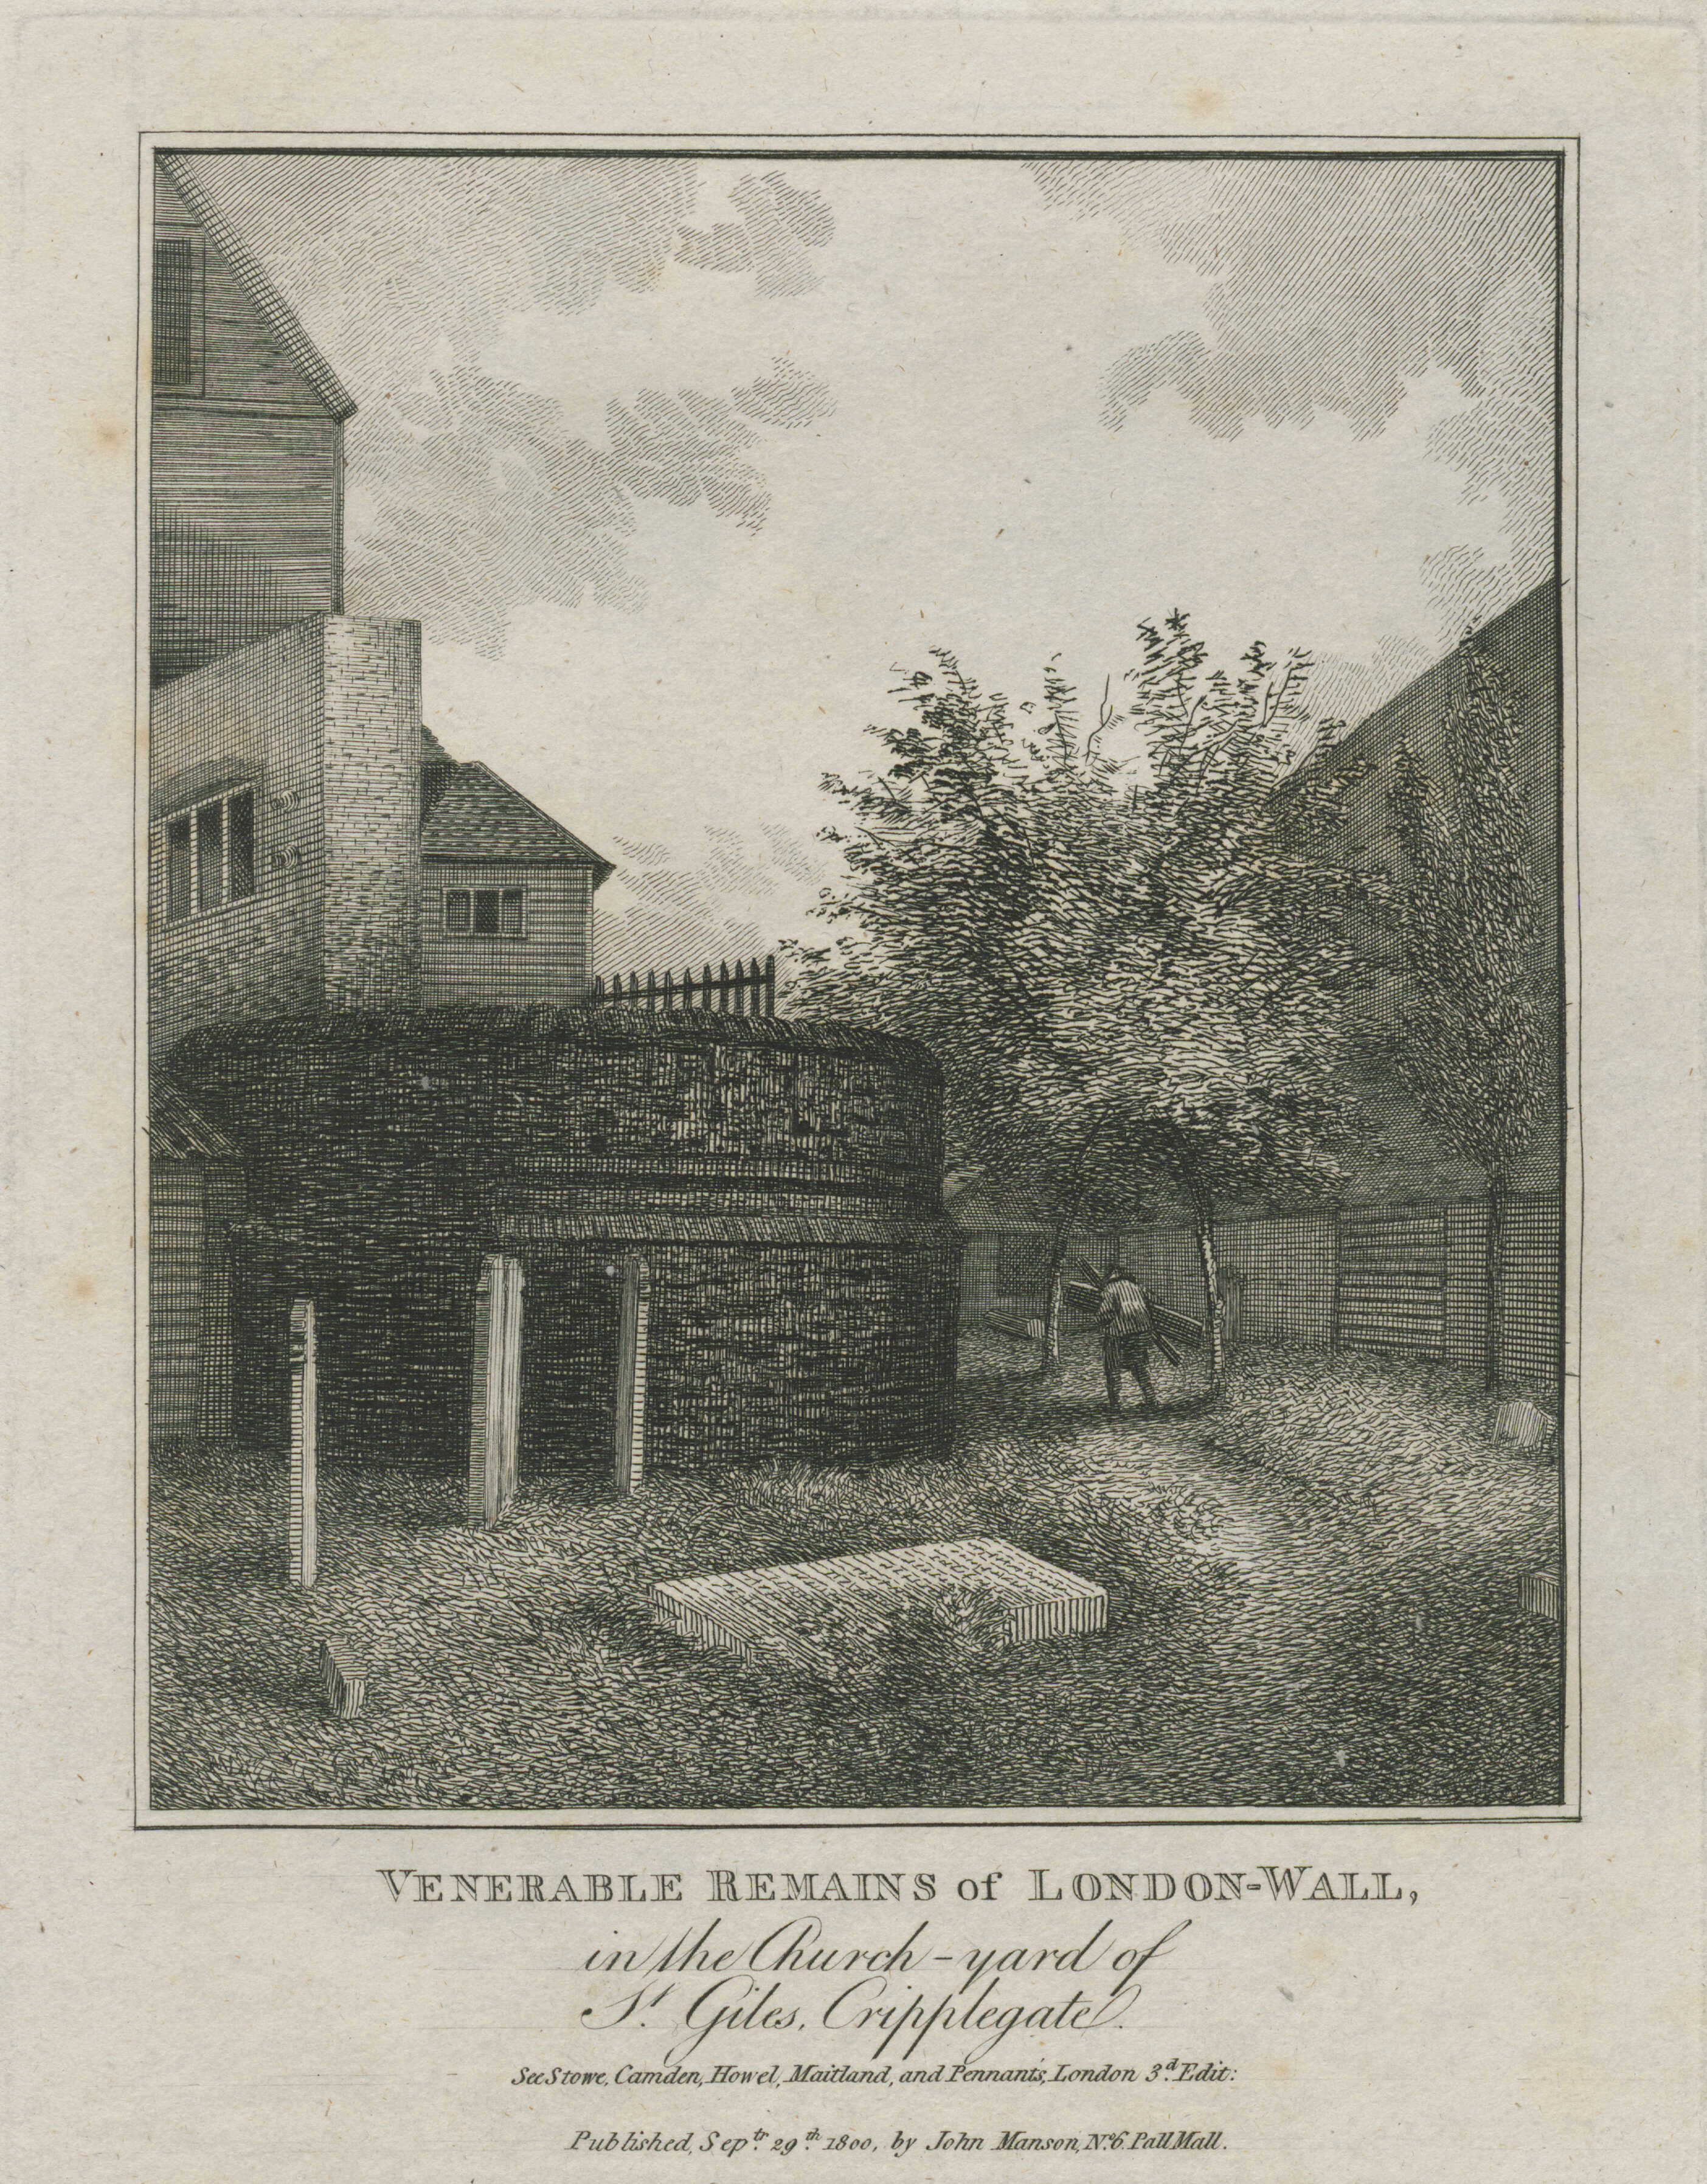 93-venerable-remains-of-london-wall